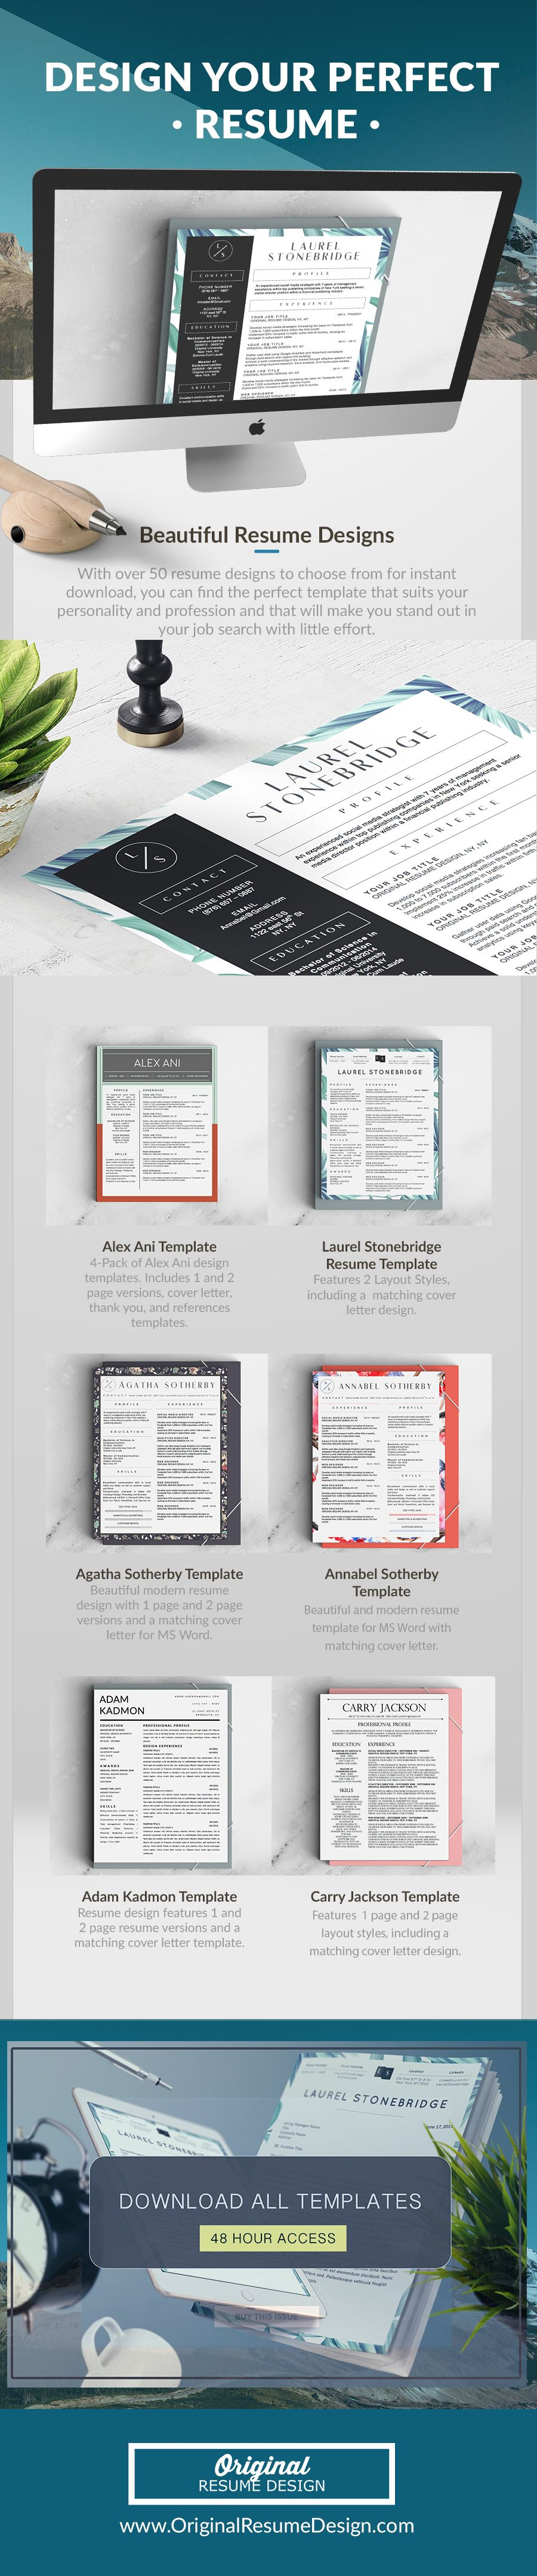 Beautiful Resume Designs To Help You Stand Out In Your Job Search